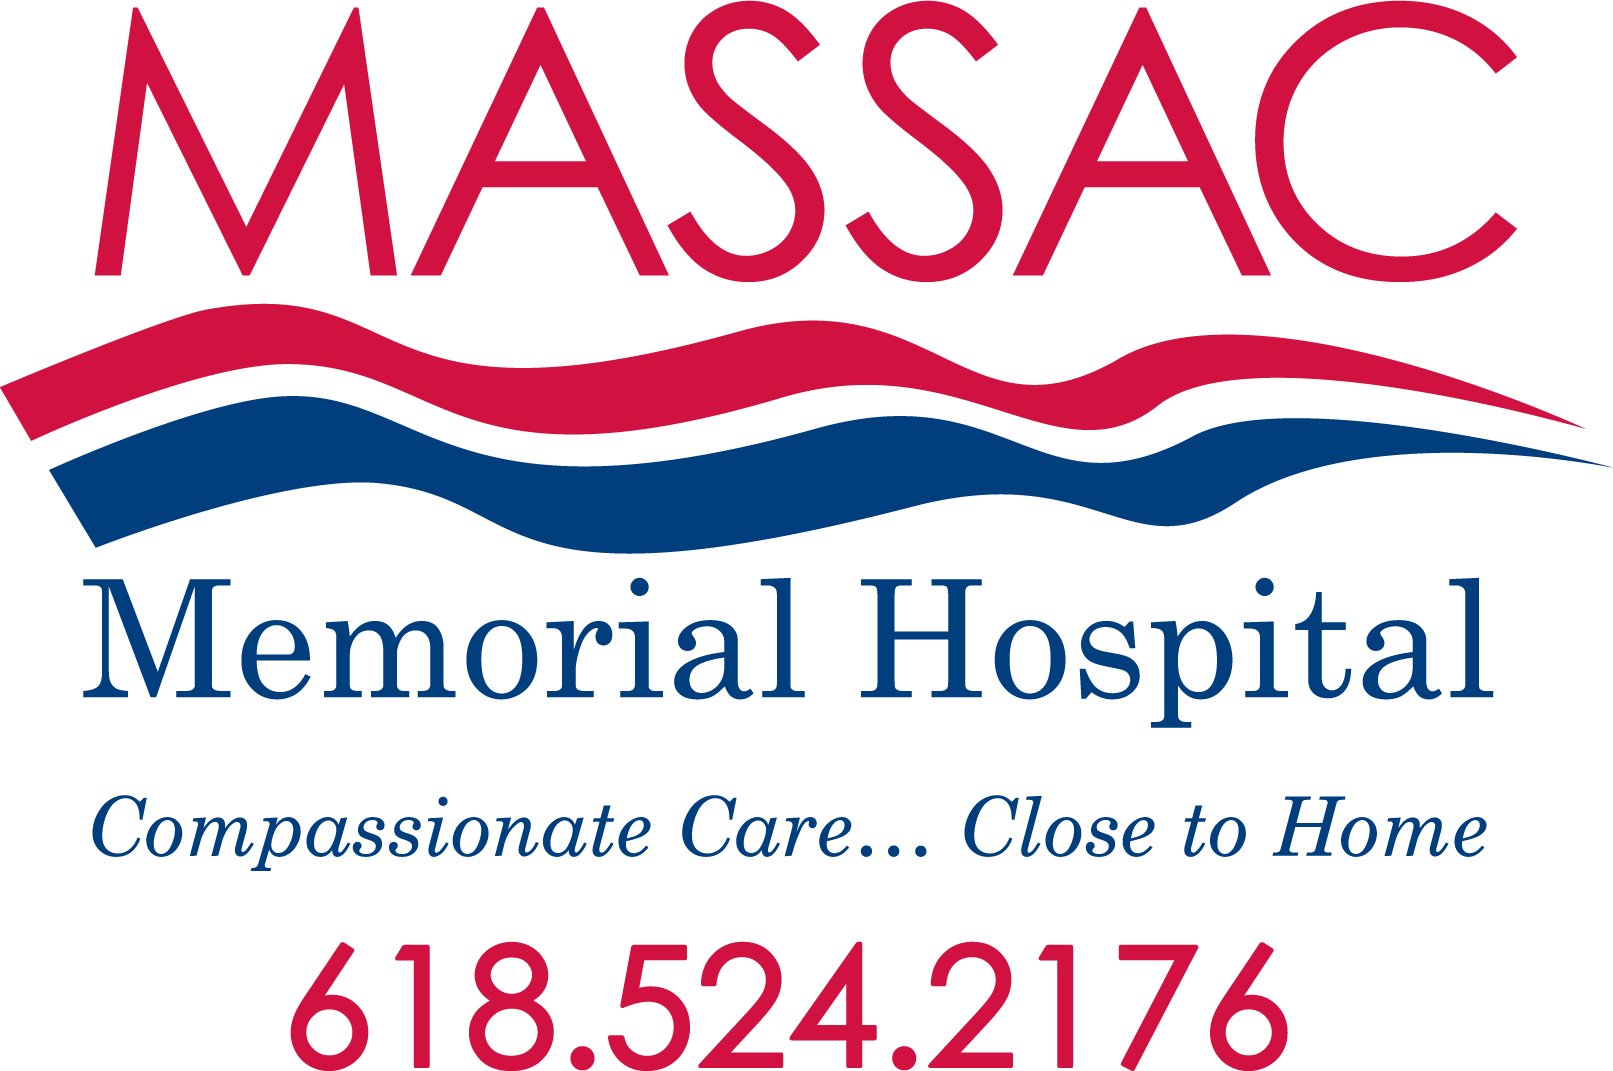 Massac Memorial Hospital - Metropolis, IL